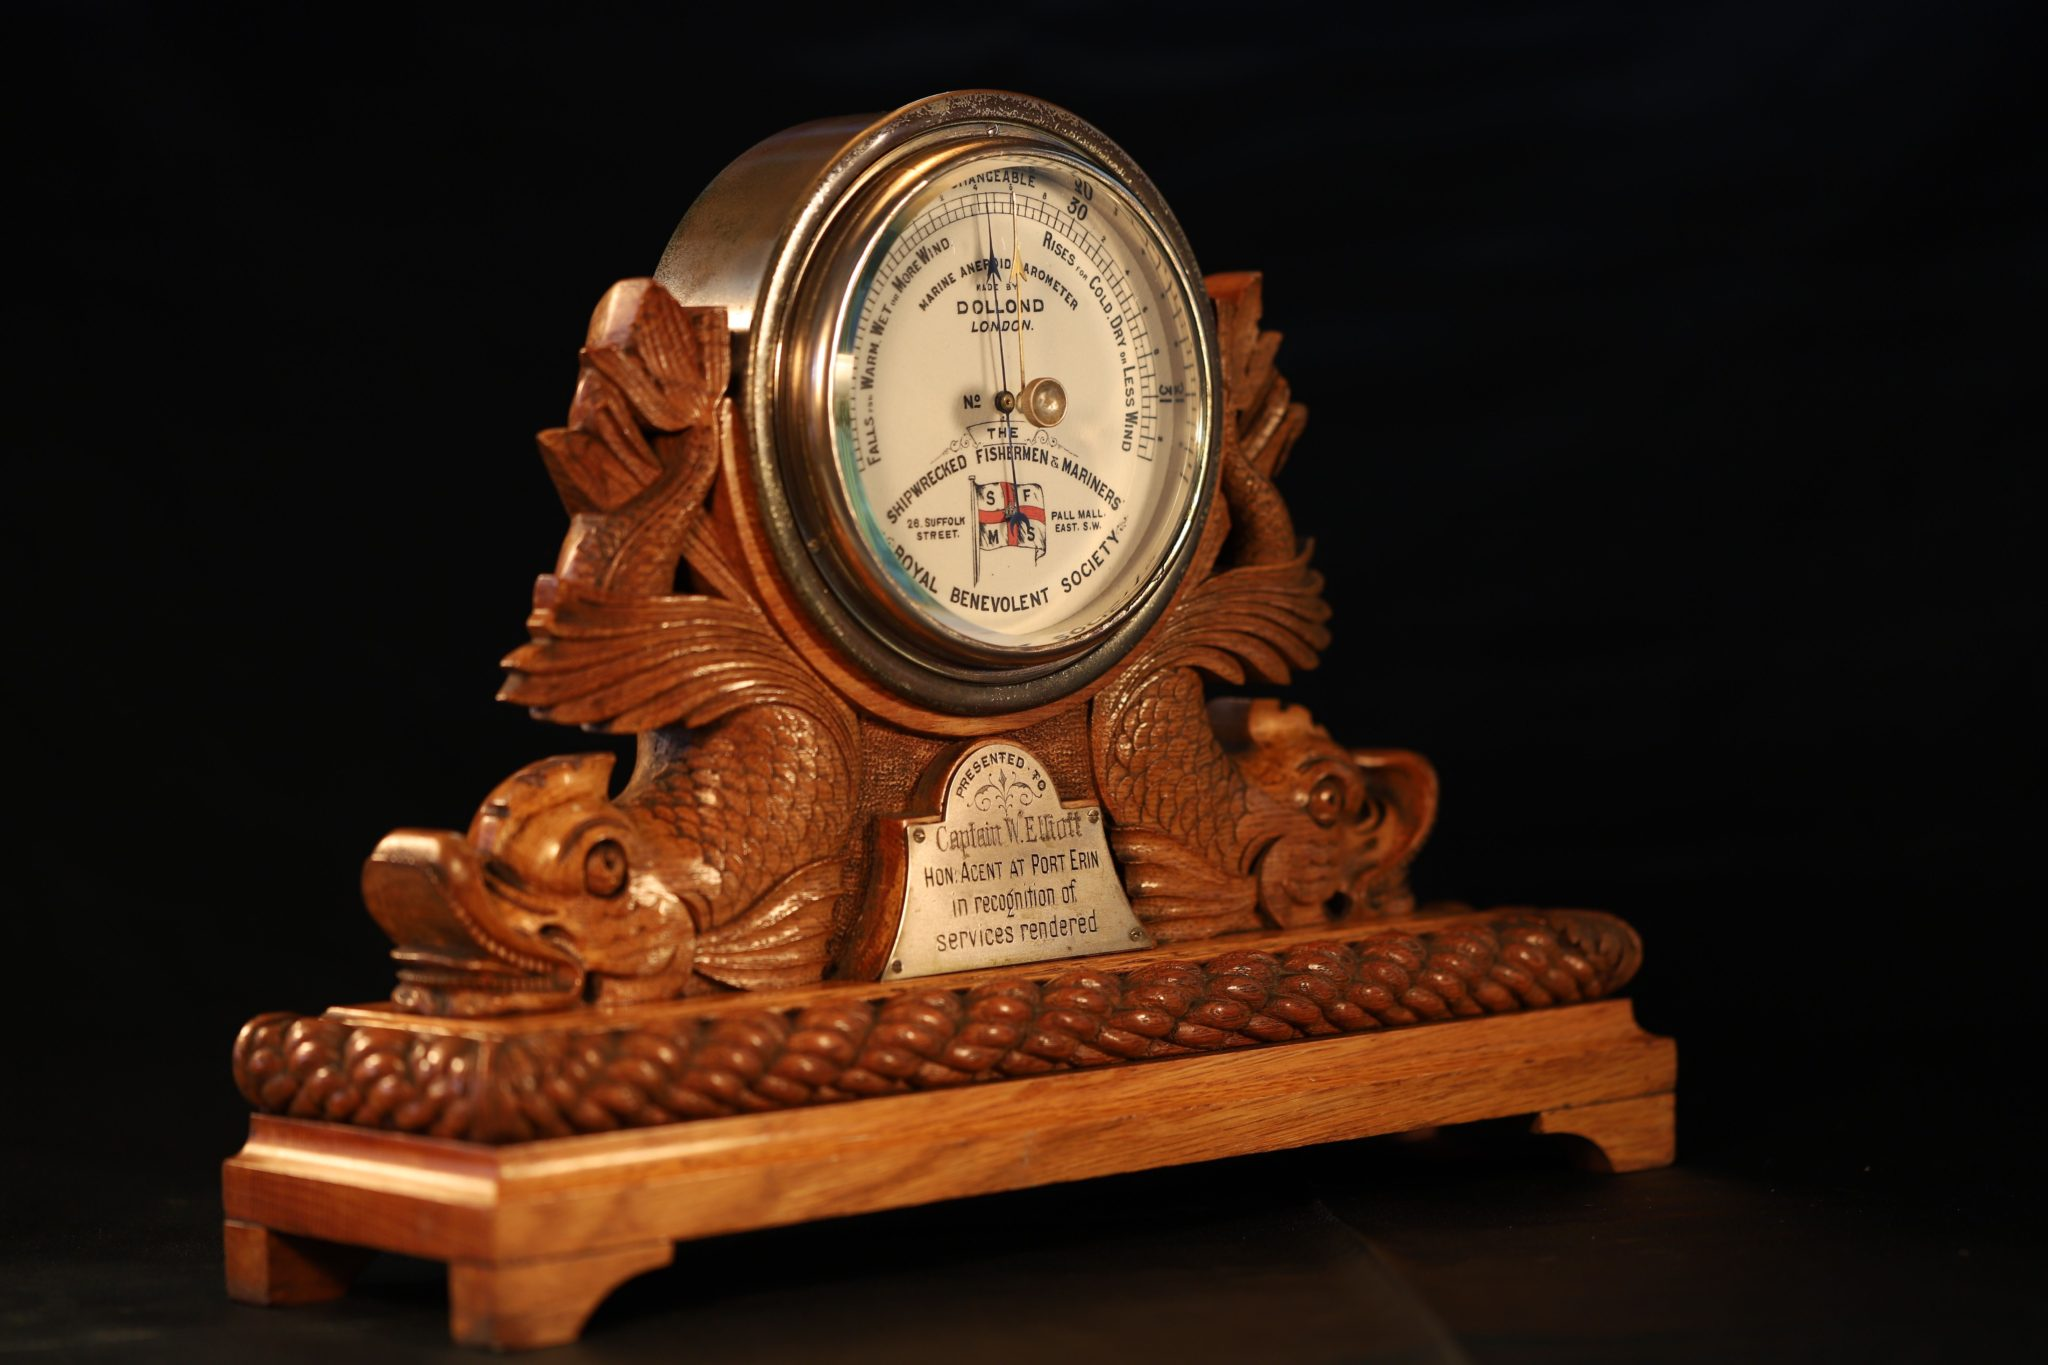 Image of Dollond Shipwrecked Barometer No 6624